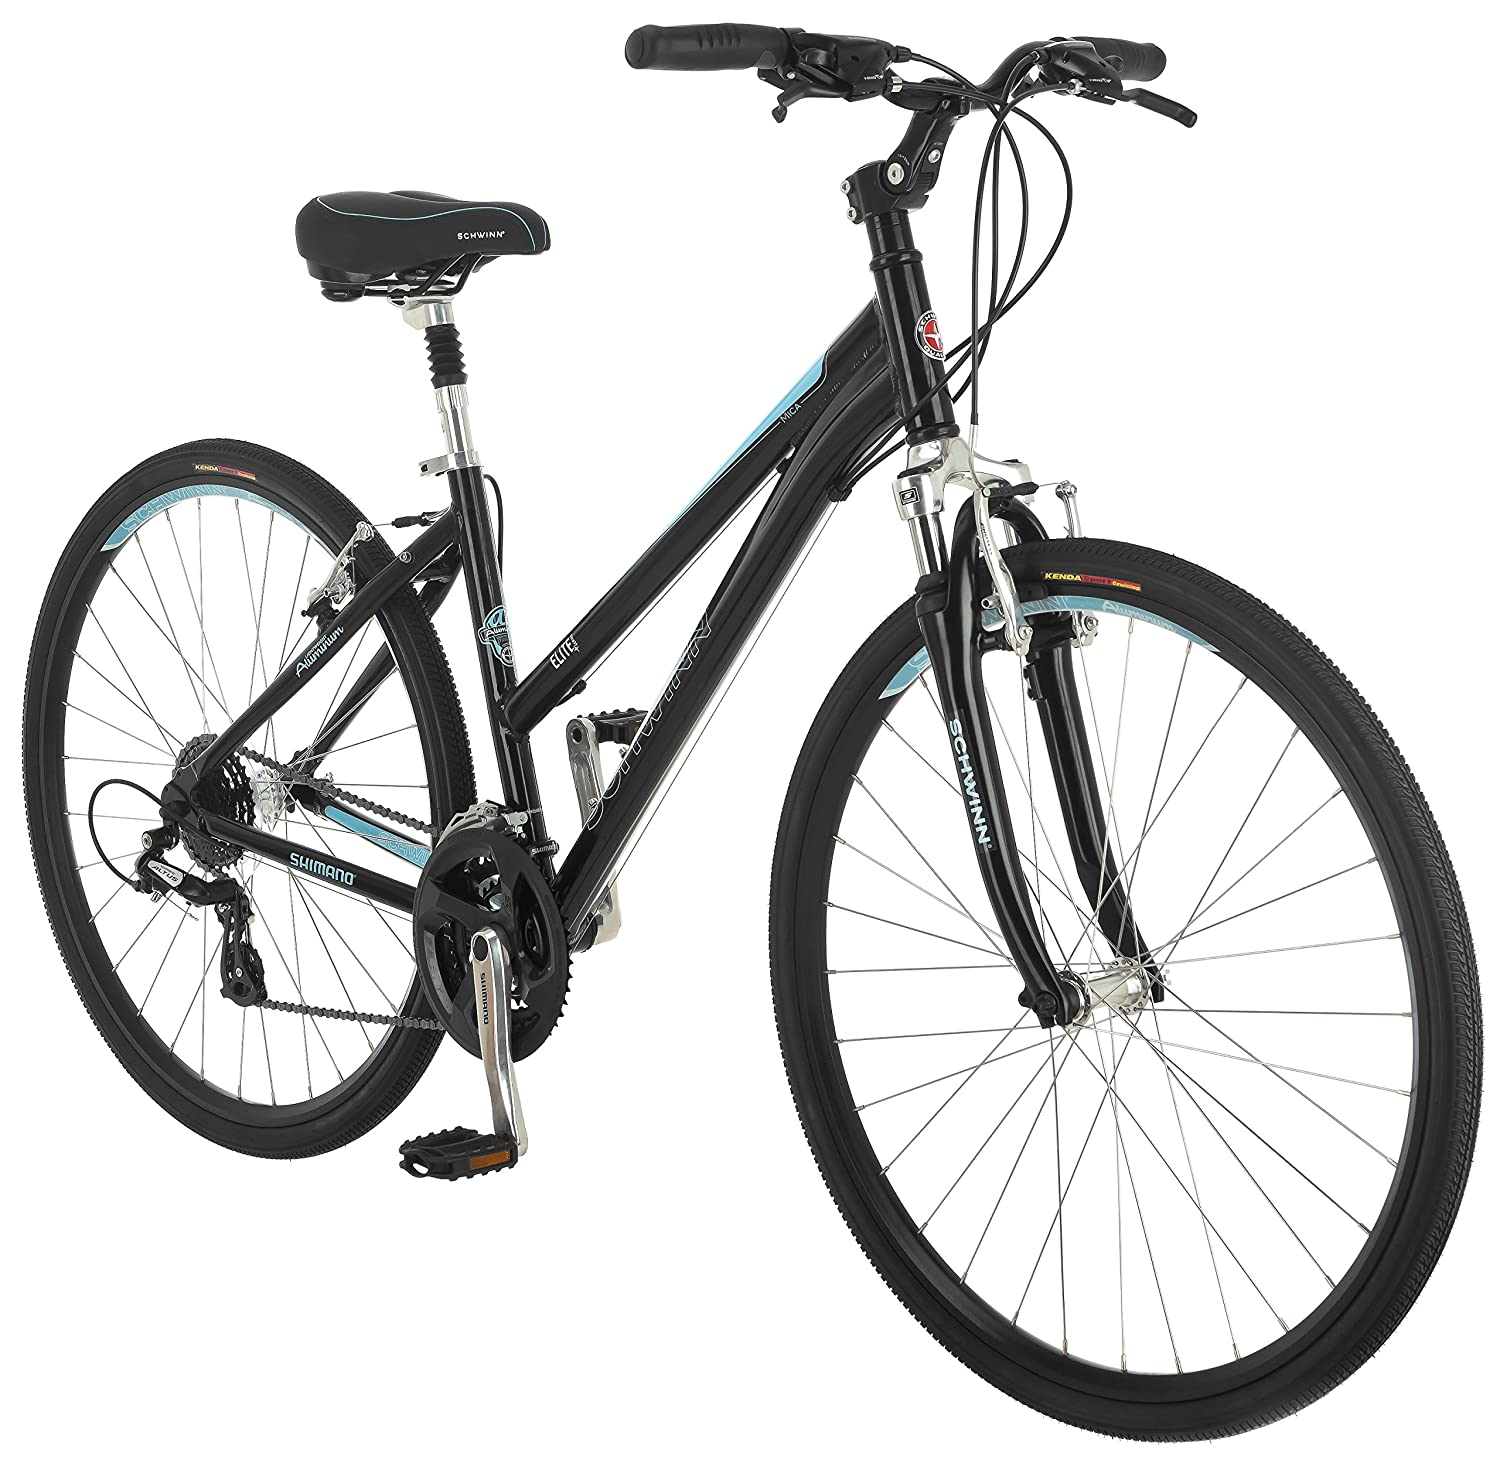 Best Hybrid Bike for Women 3